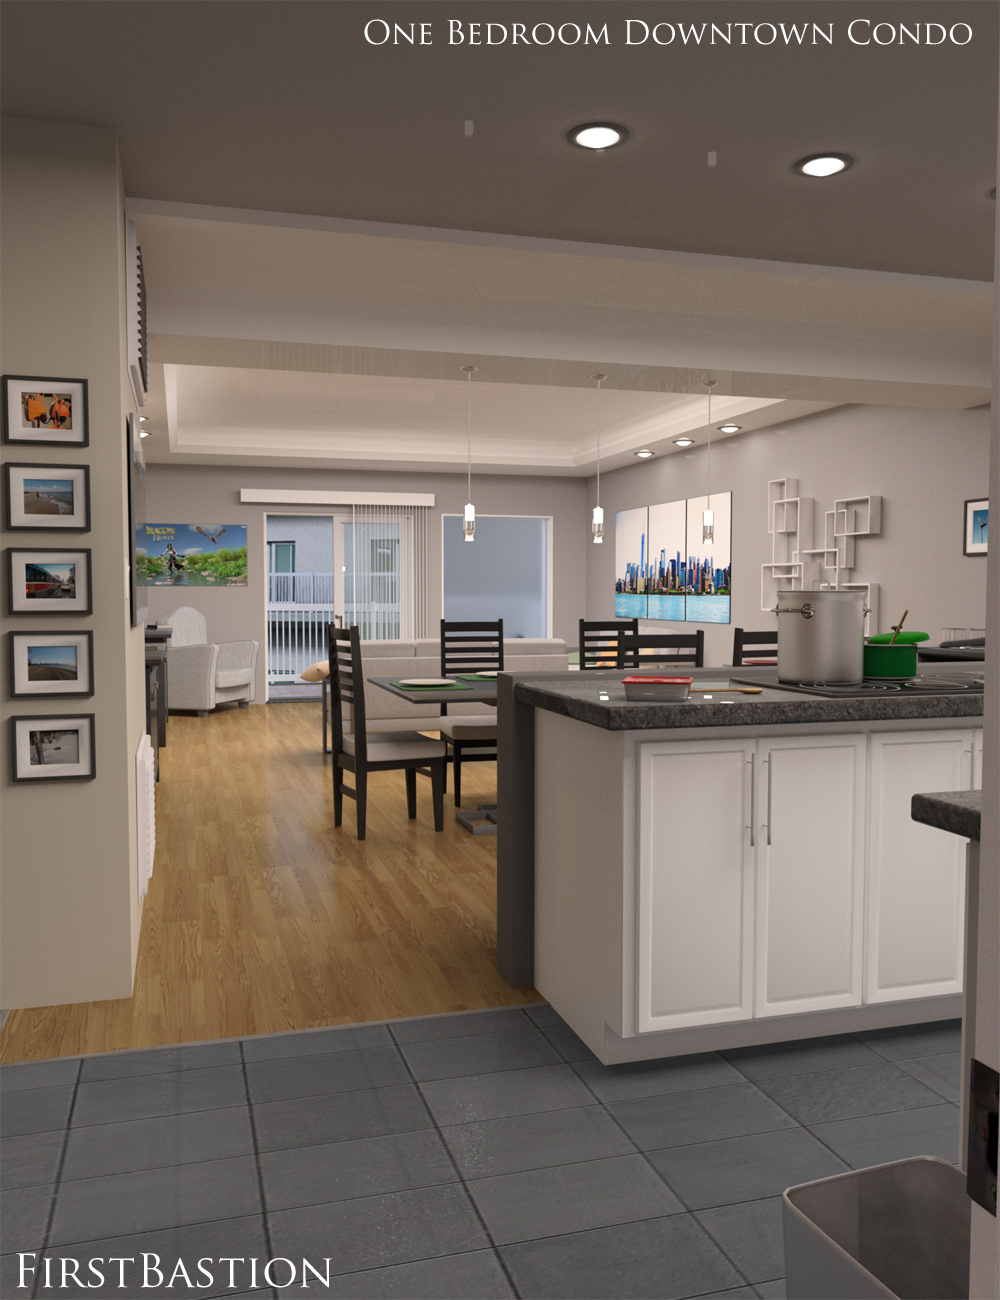 1stb One Bedroom Downtown Condo Apartment Daz 3d